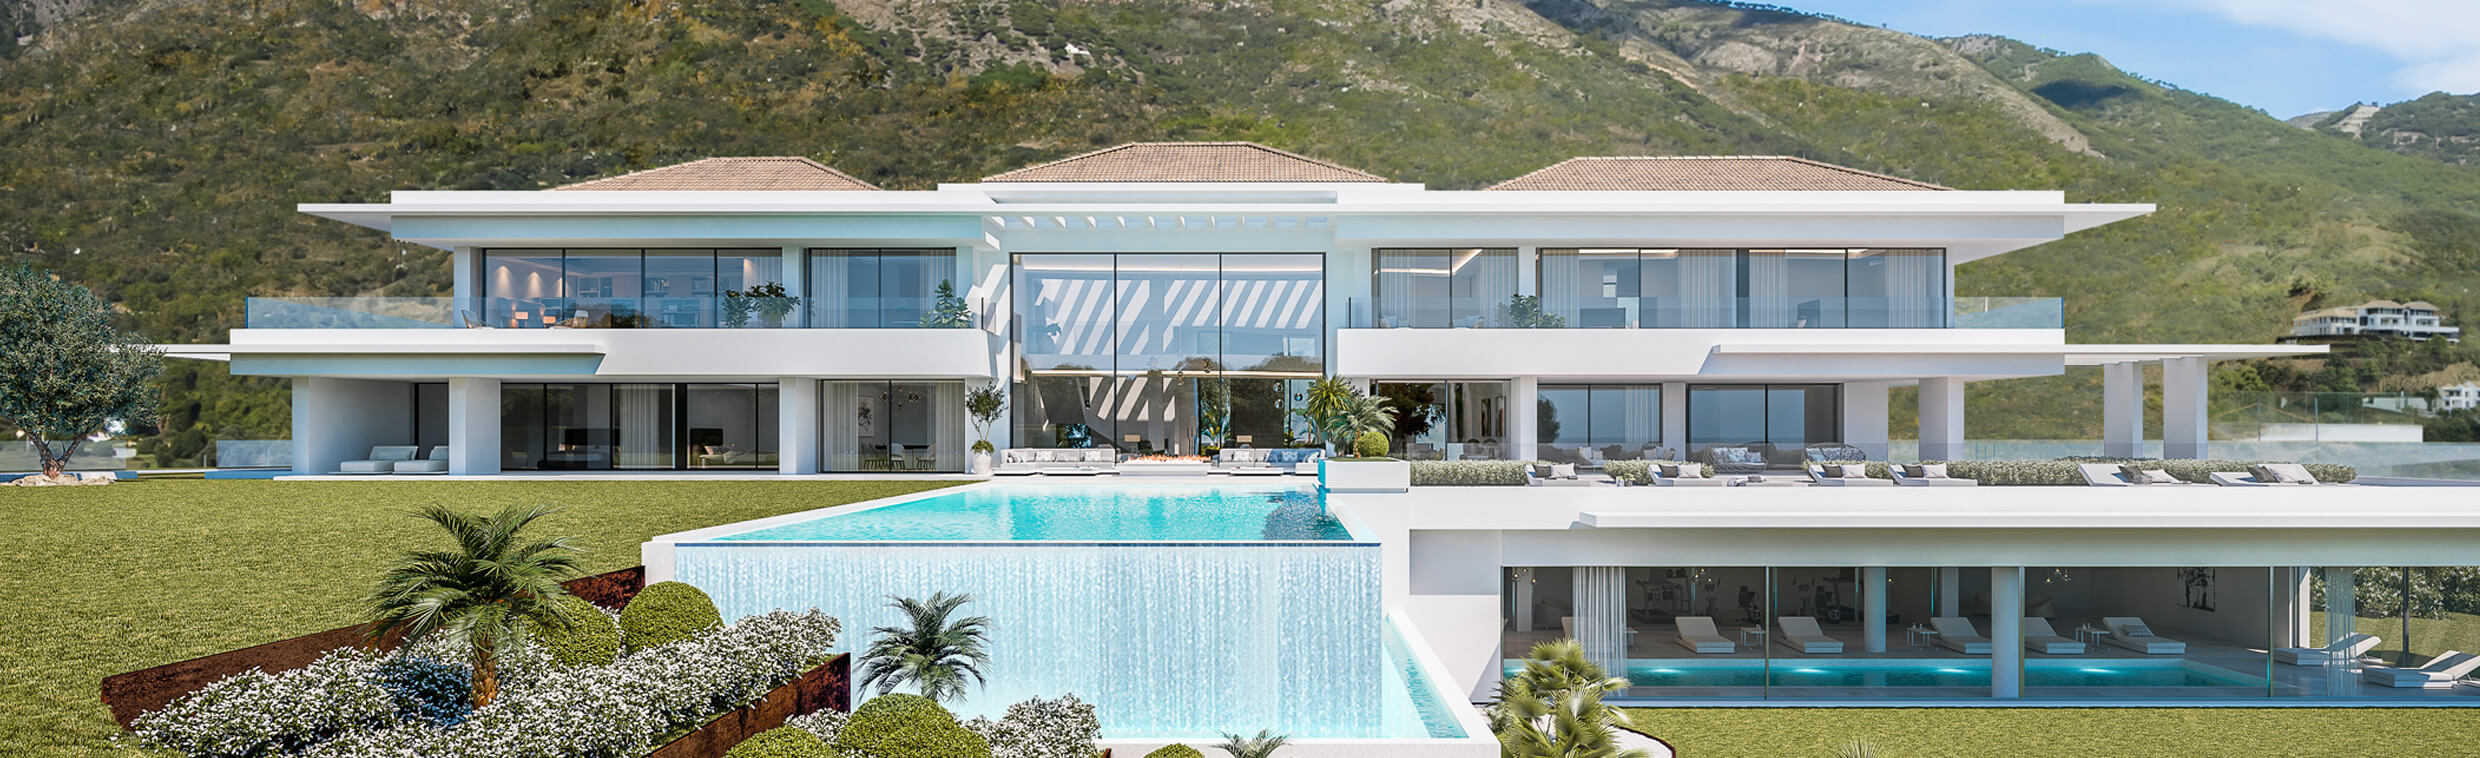 Estate Agency Marbella | Luxurious Hillside Property Marbella | Marbella.co.uk